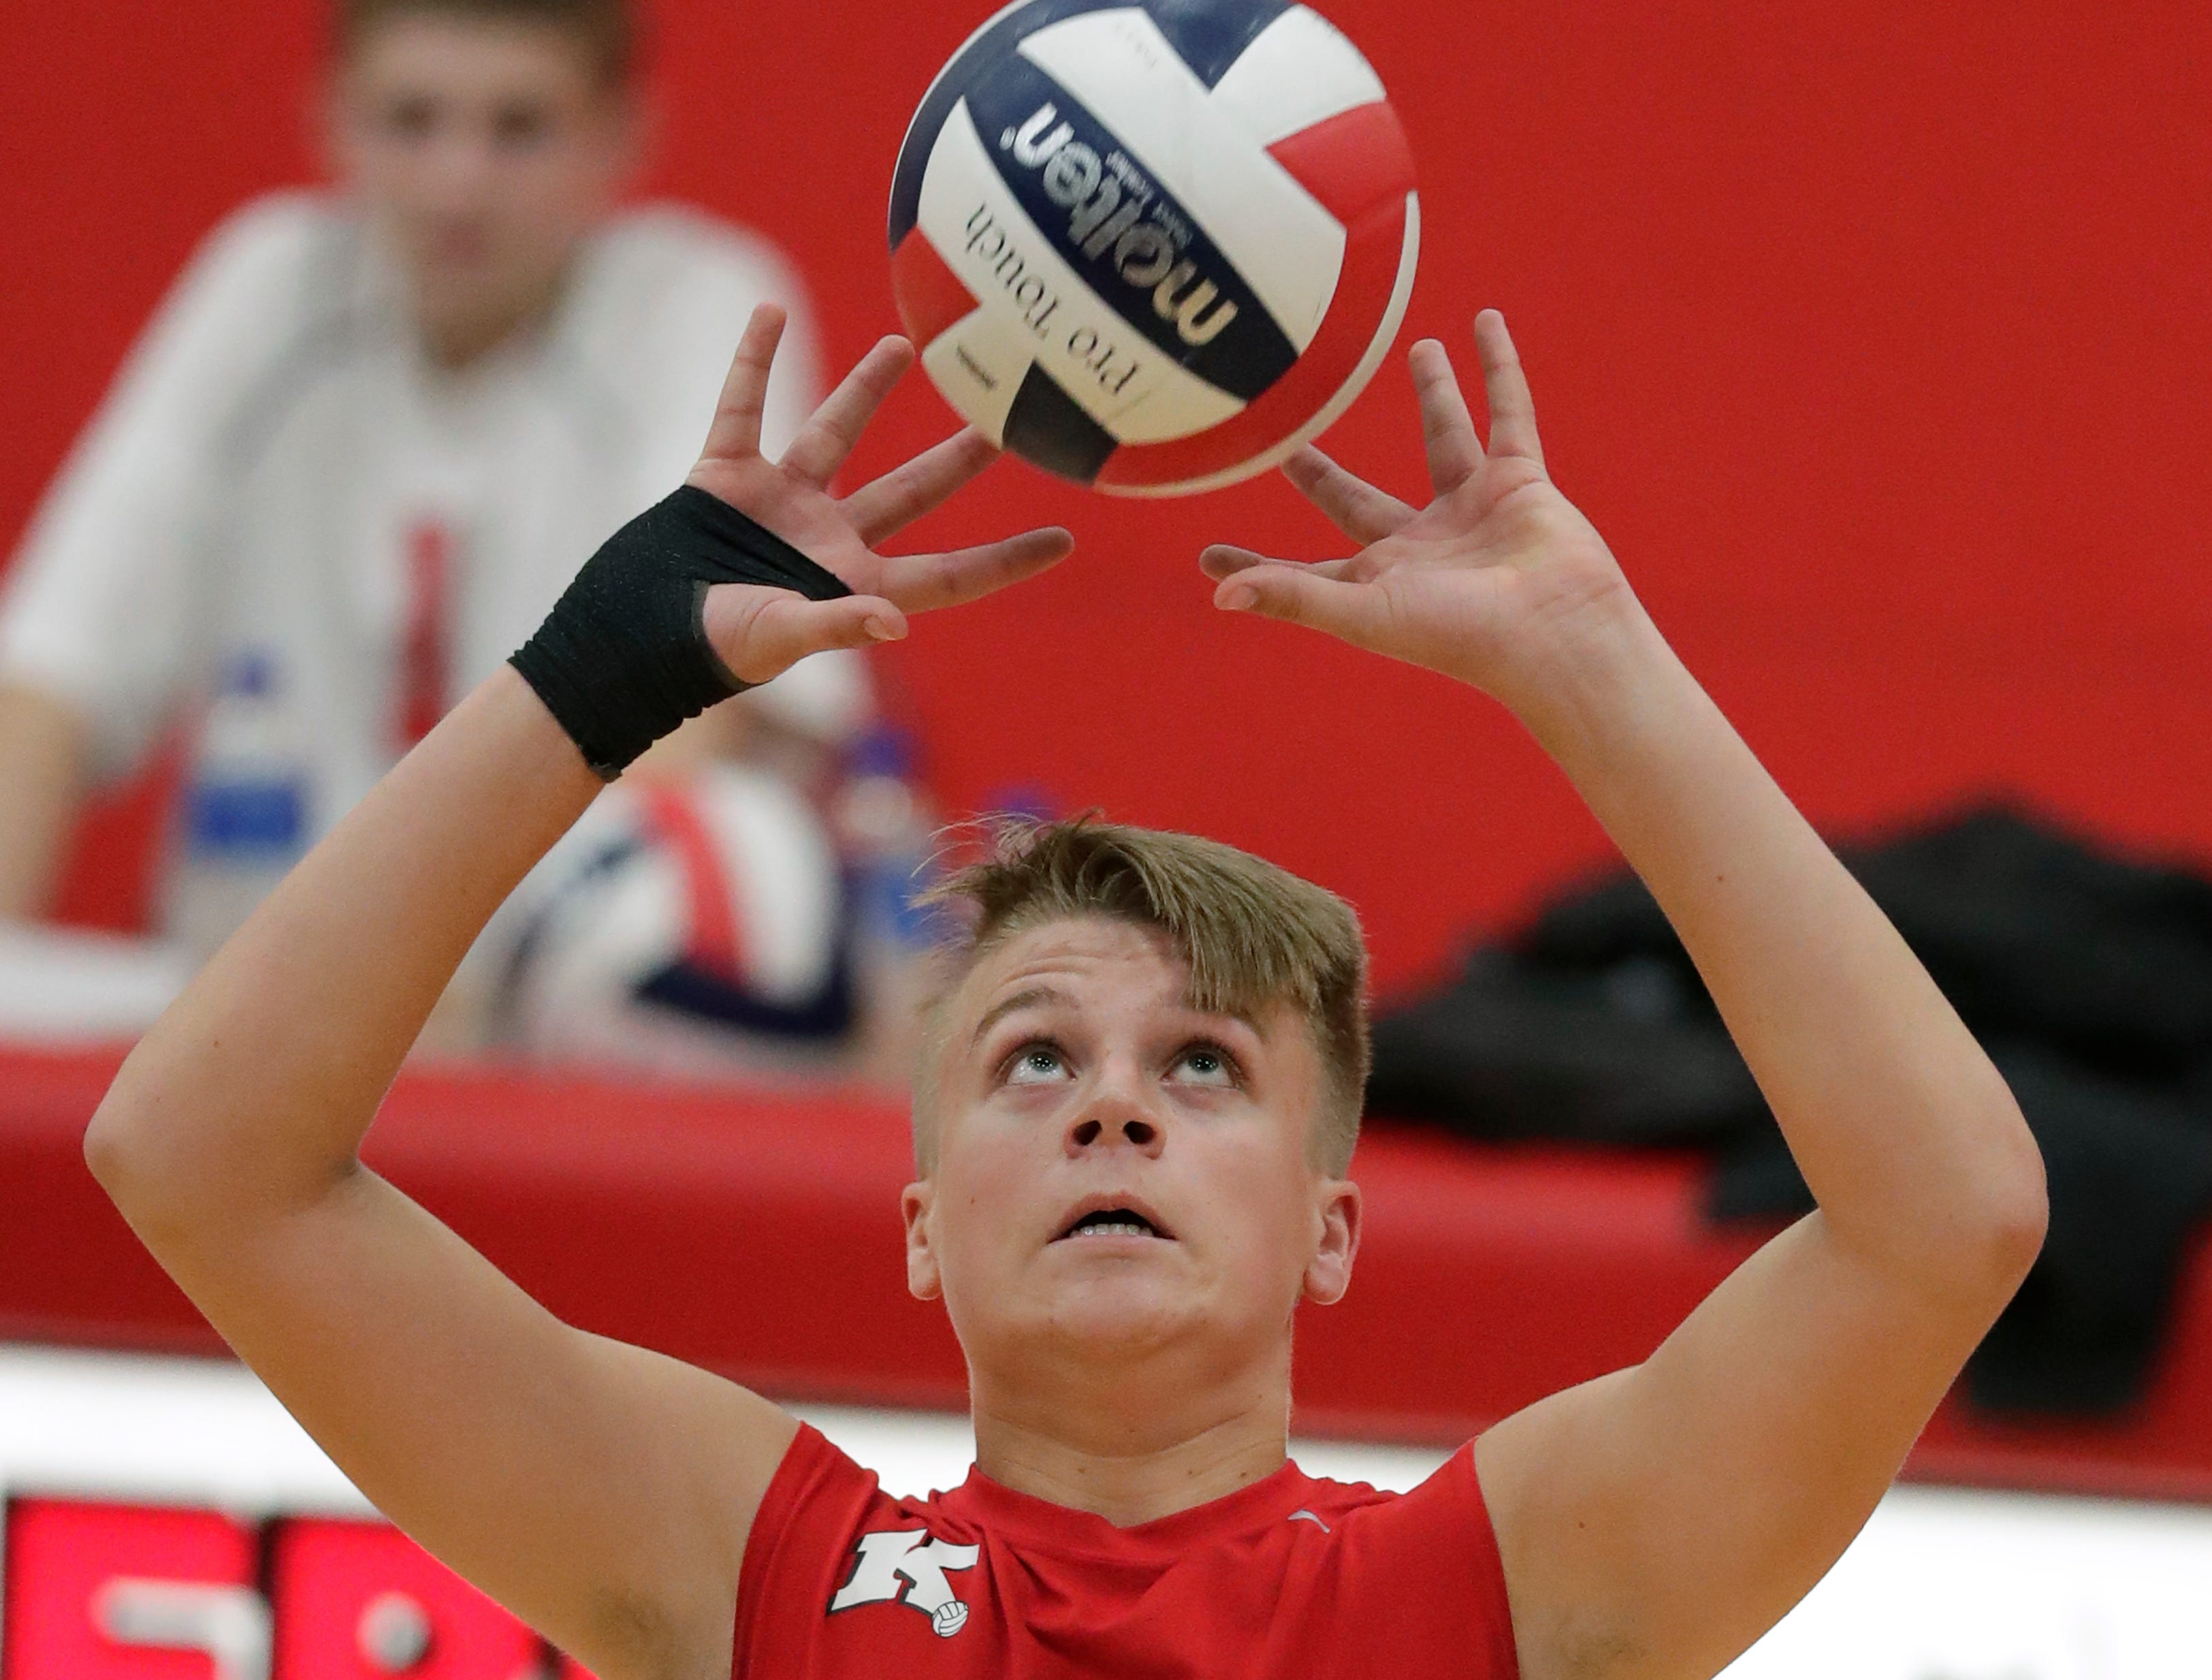 Kimberly High School's Chase Robinson (5) sets the ball against Appleton North High School during their boys volleyball match Tuesday, Oct. 9, 2018, in Kimberly, Wis. 